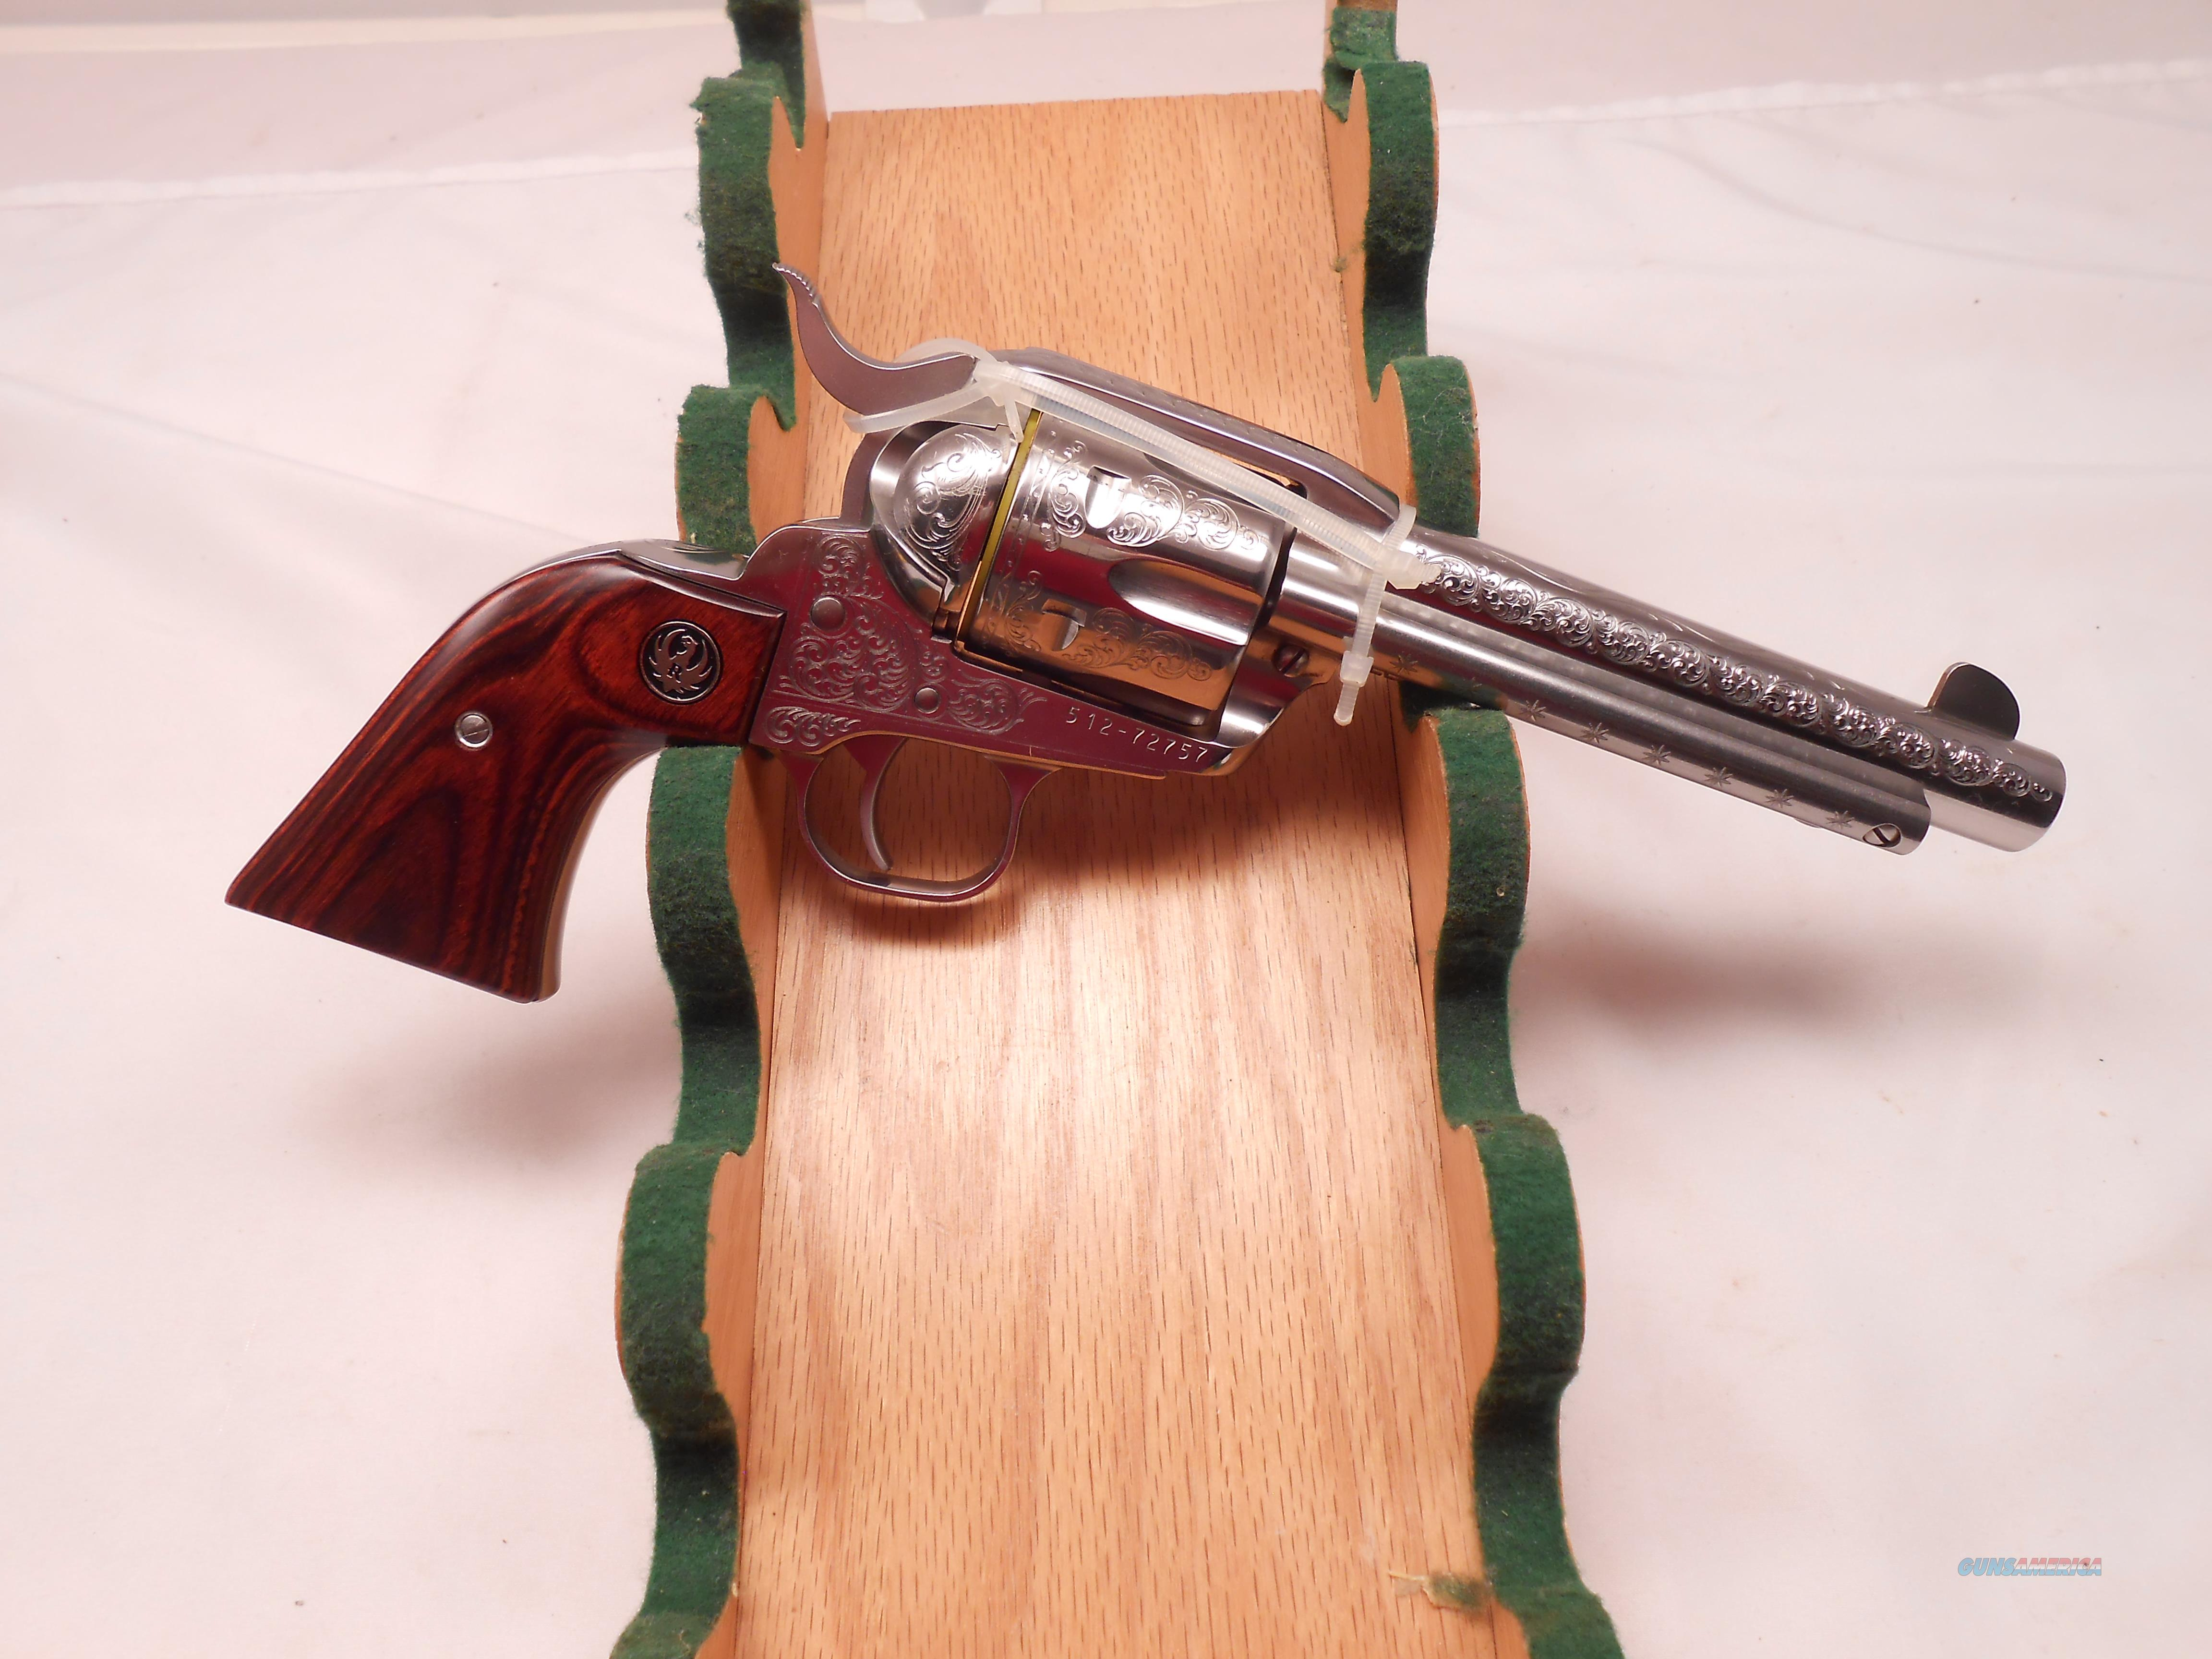 Beautifull Engraved Ruger New Vaquero  Guns > Pistols > Ruger Single Action Revolvers > Cowboy Action